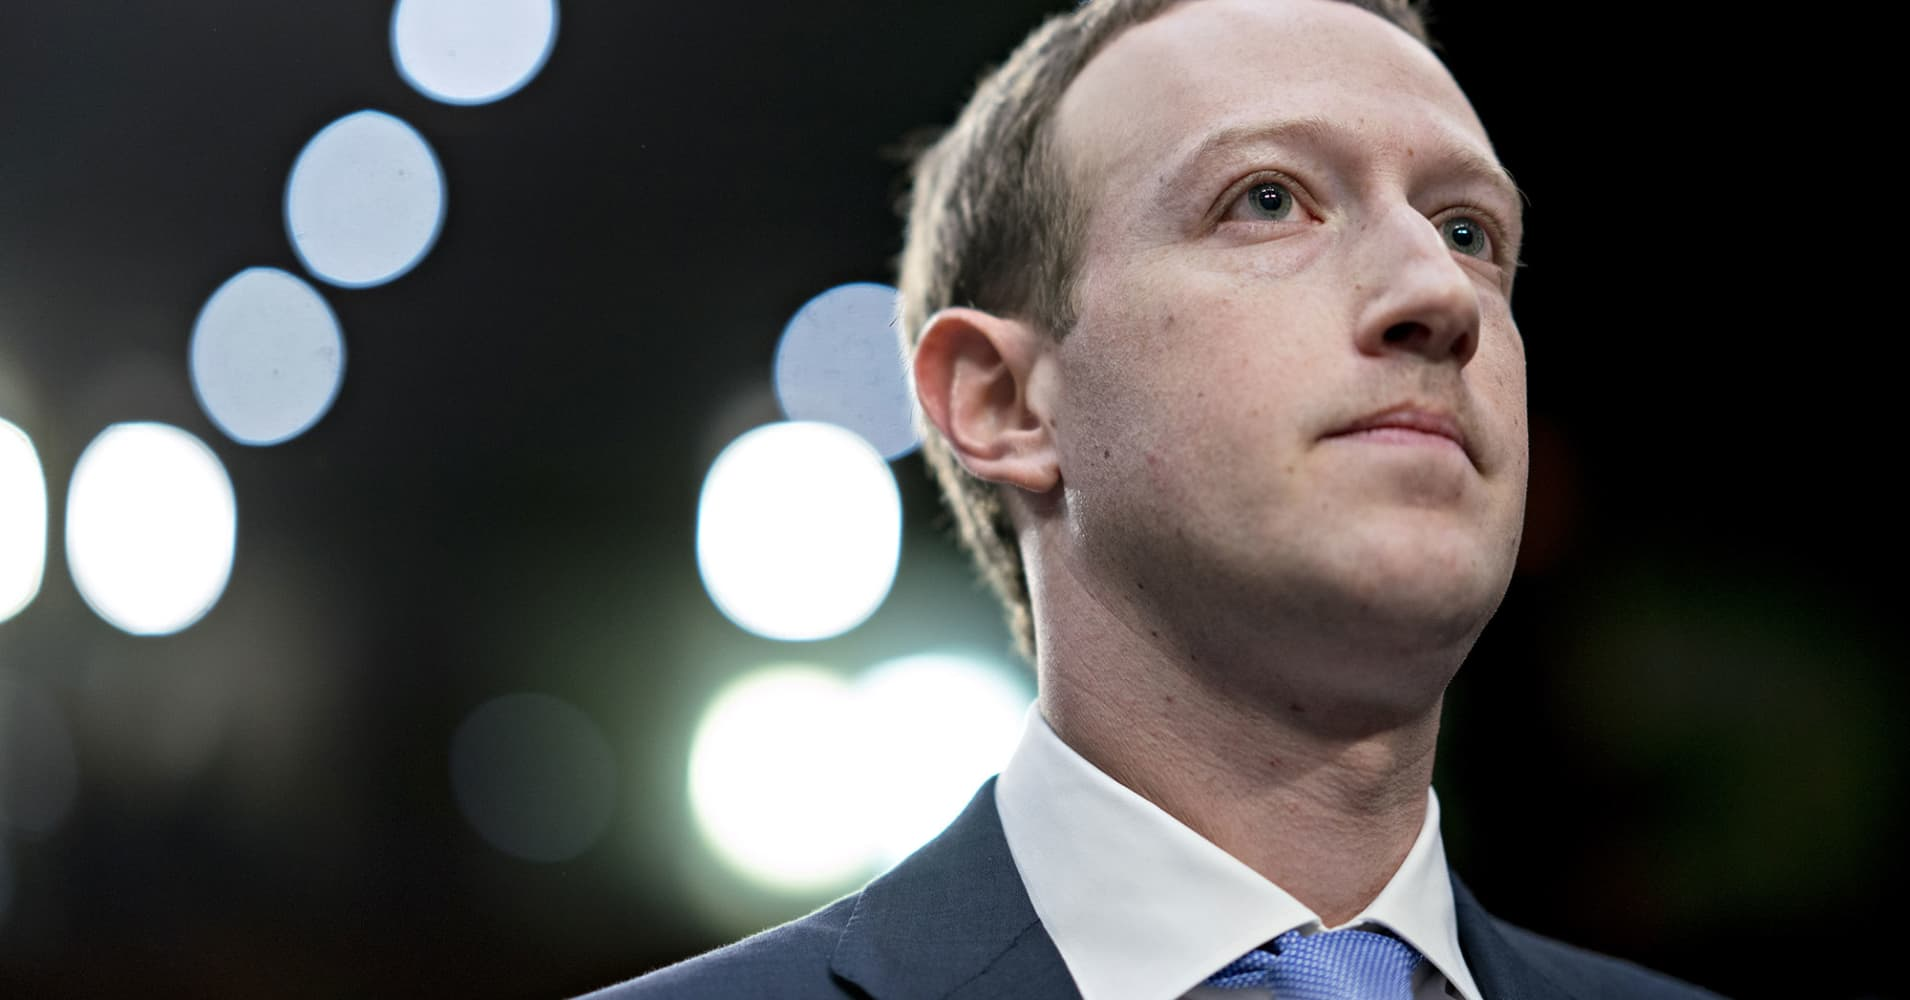 Some advertisers are quitting Facebook, chiding the company's 'despicable business model'